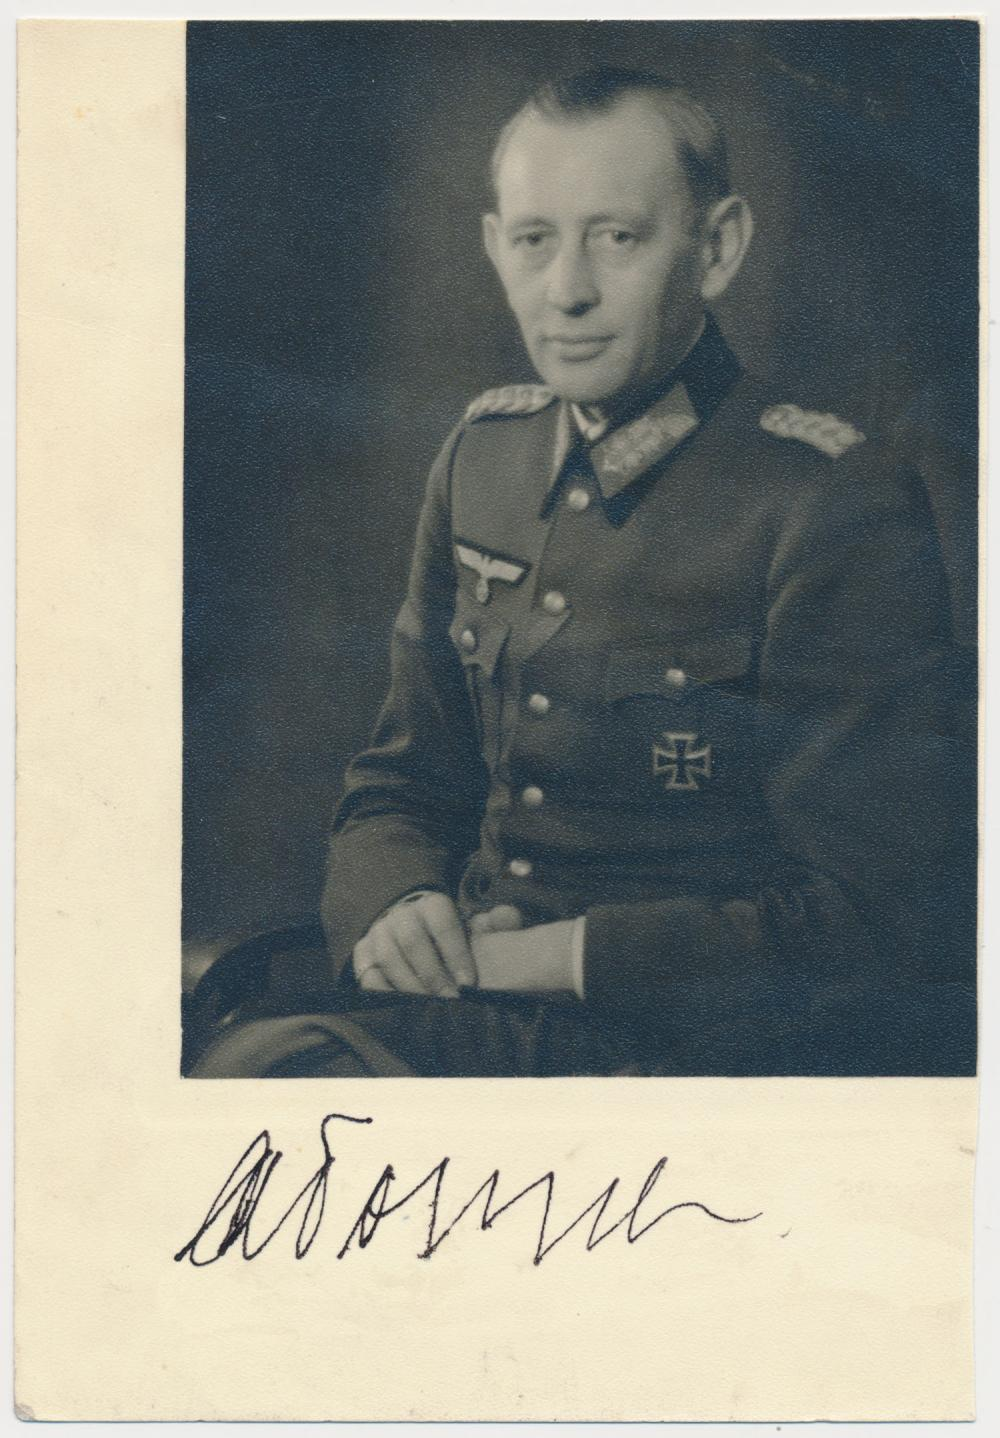 ALFRED TOPPE